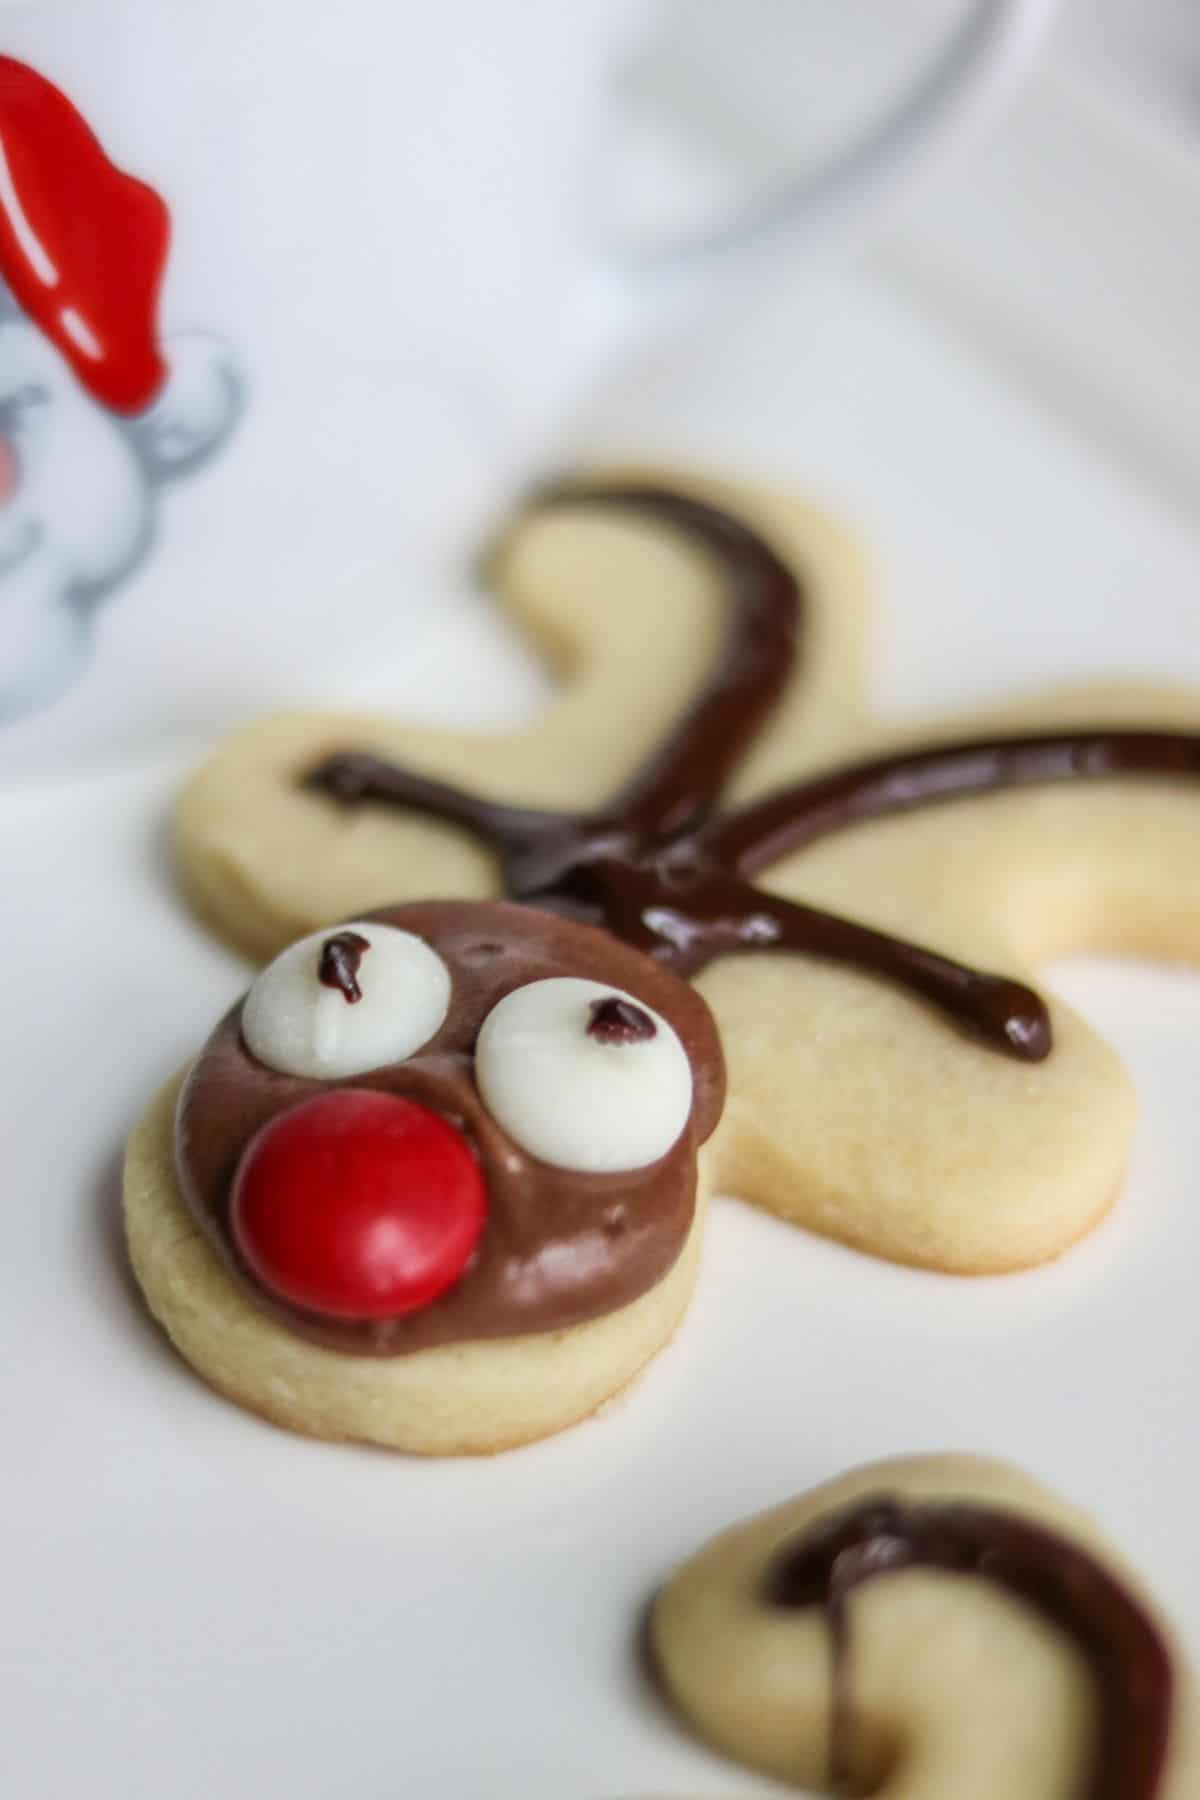 A gingerbread cut out cookie turned upside down and decorated like a reindeer..